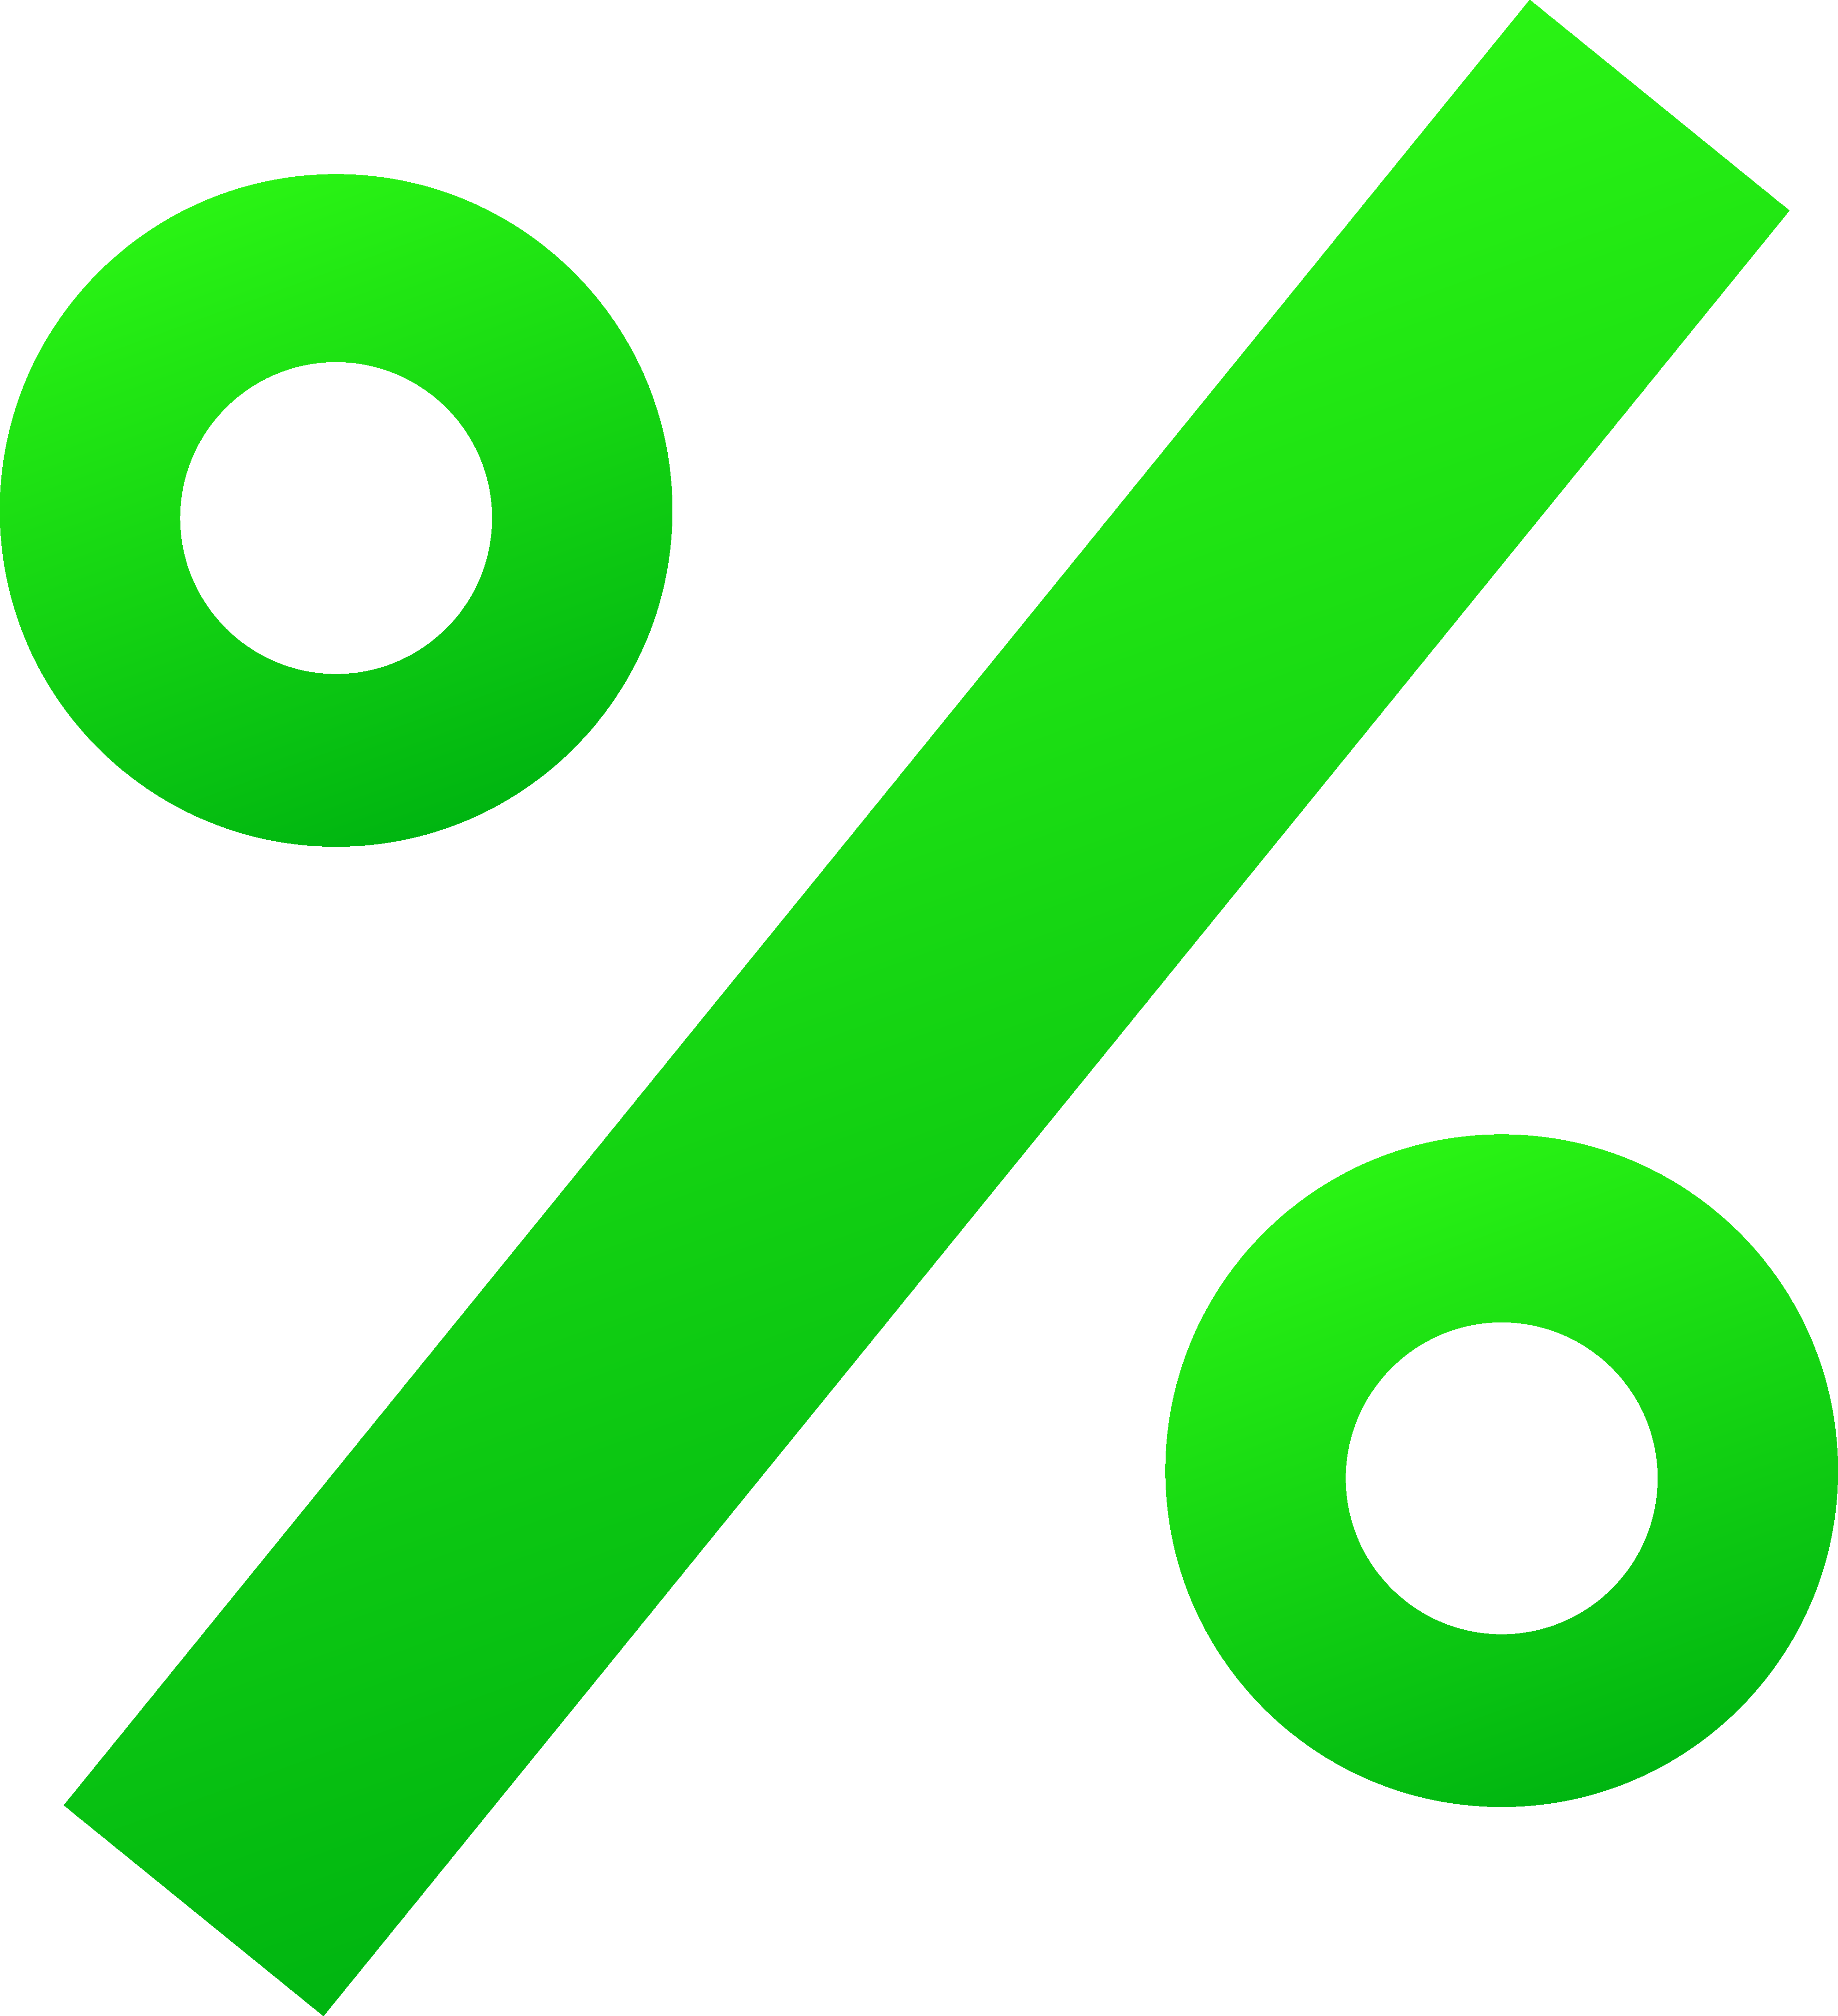 3983x4369 Green Percentage Sign